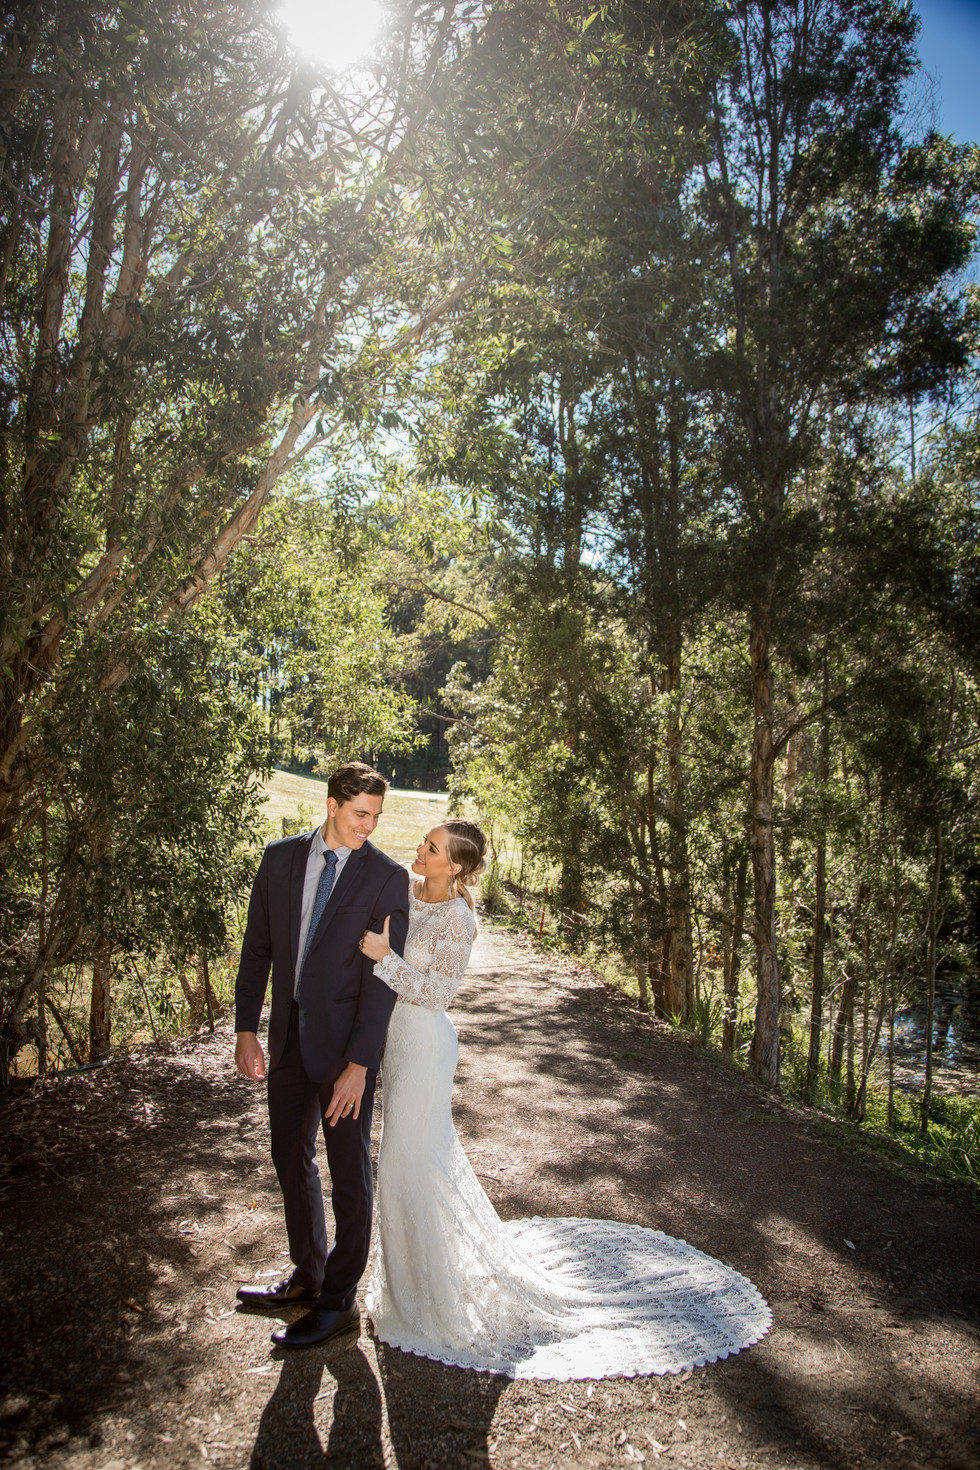 Tips for Planning a Wedding During Uncertain Times